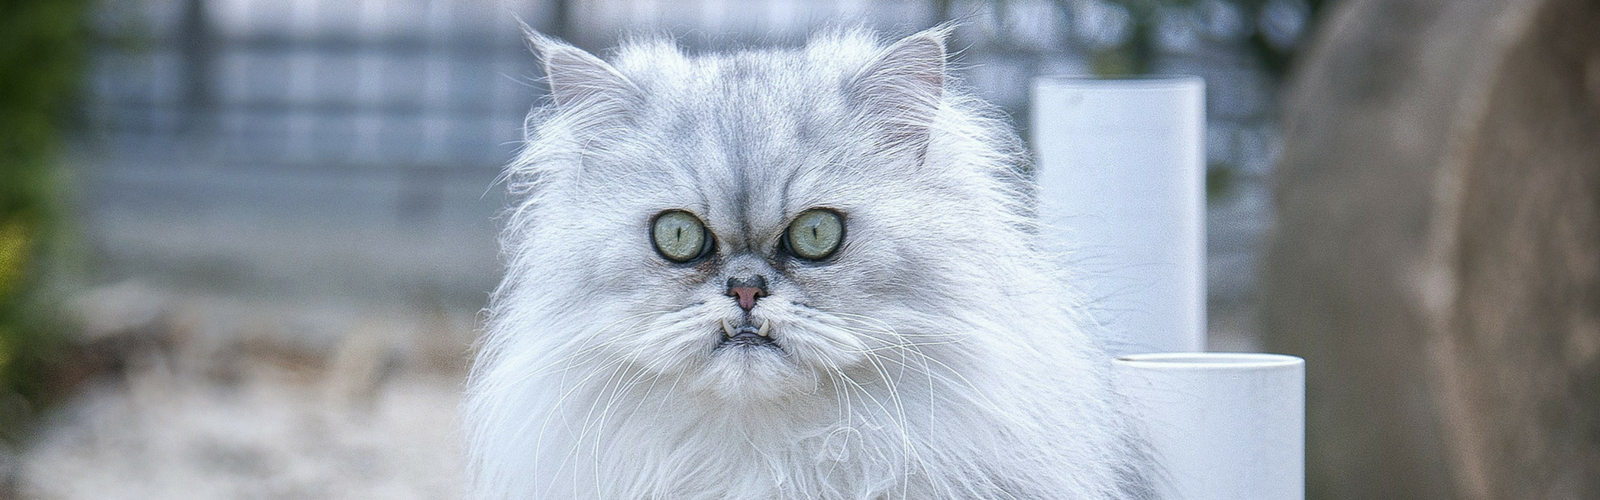 Why do Persian Cats Have Short Faces?